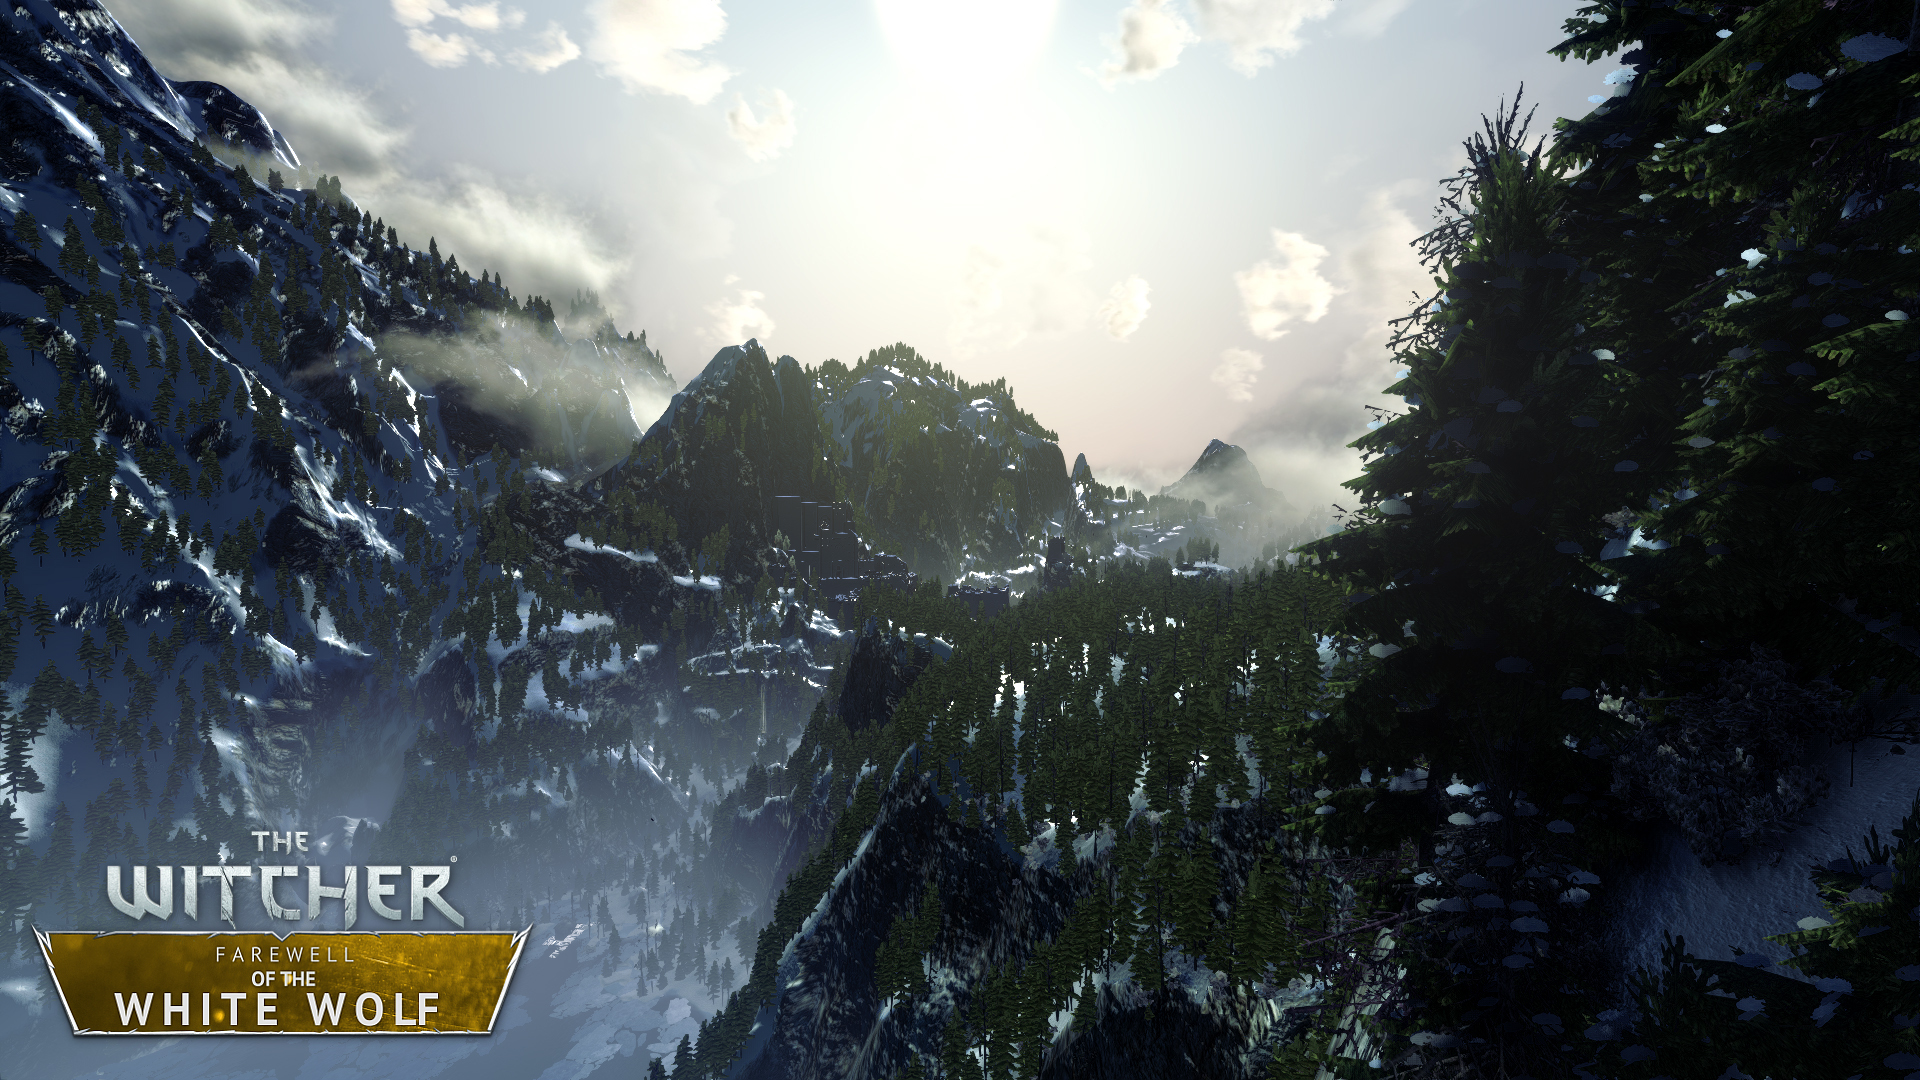 witcher-farewell-of-the-whitewolf-004